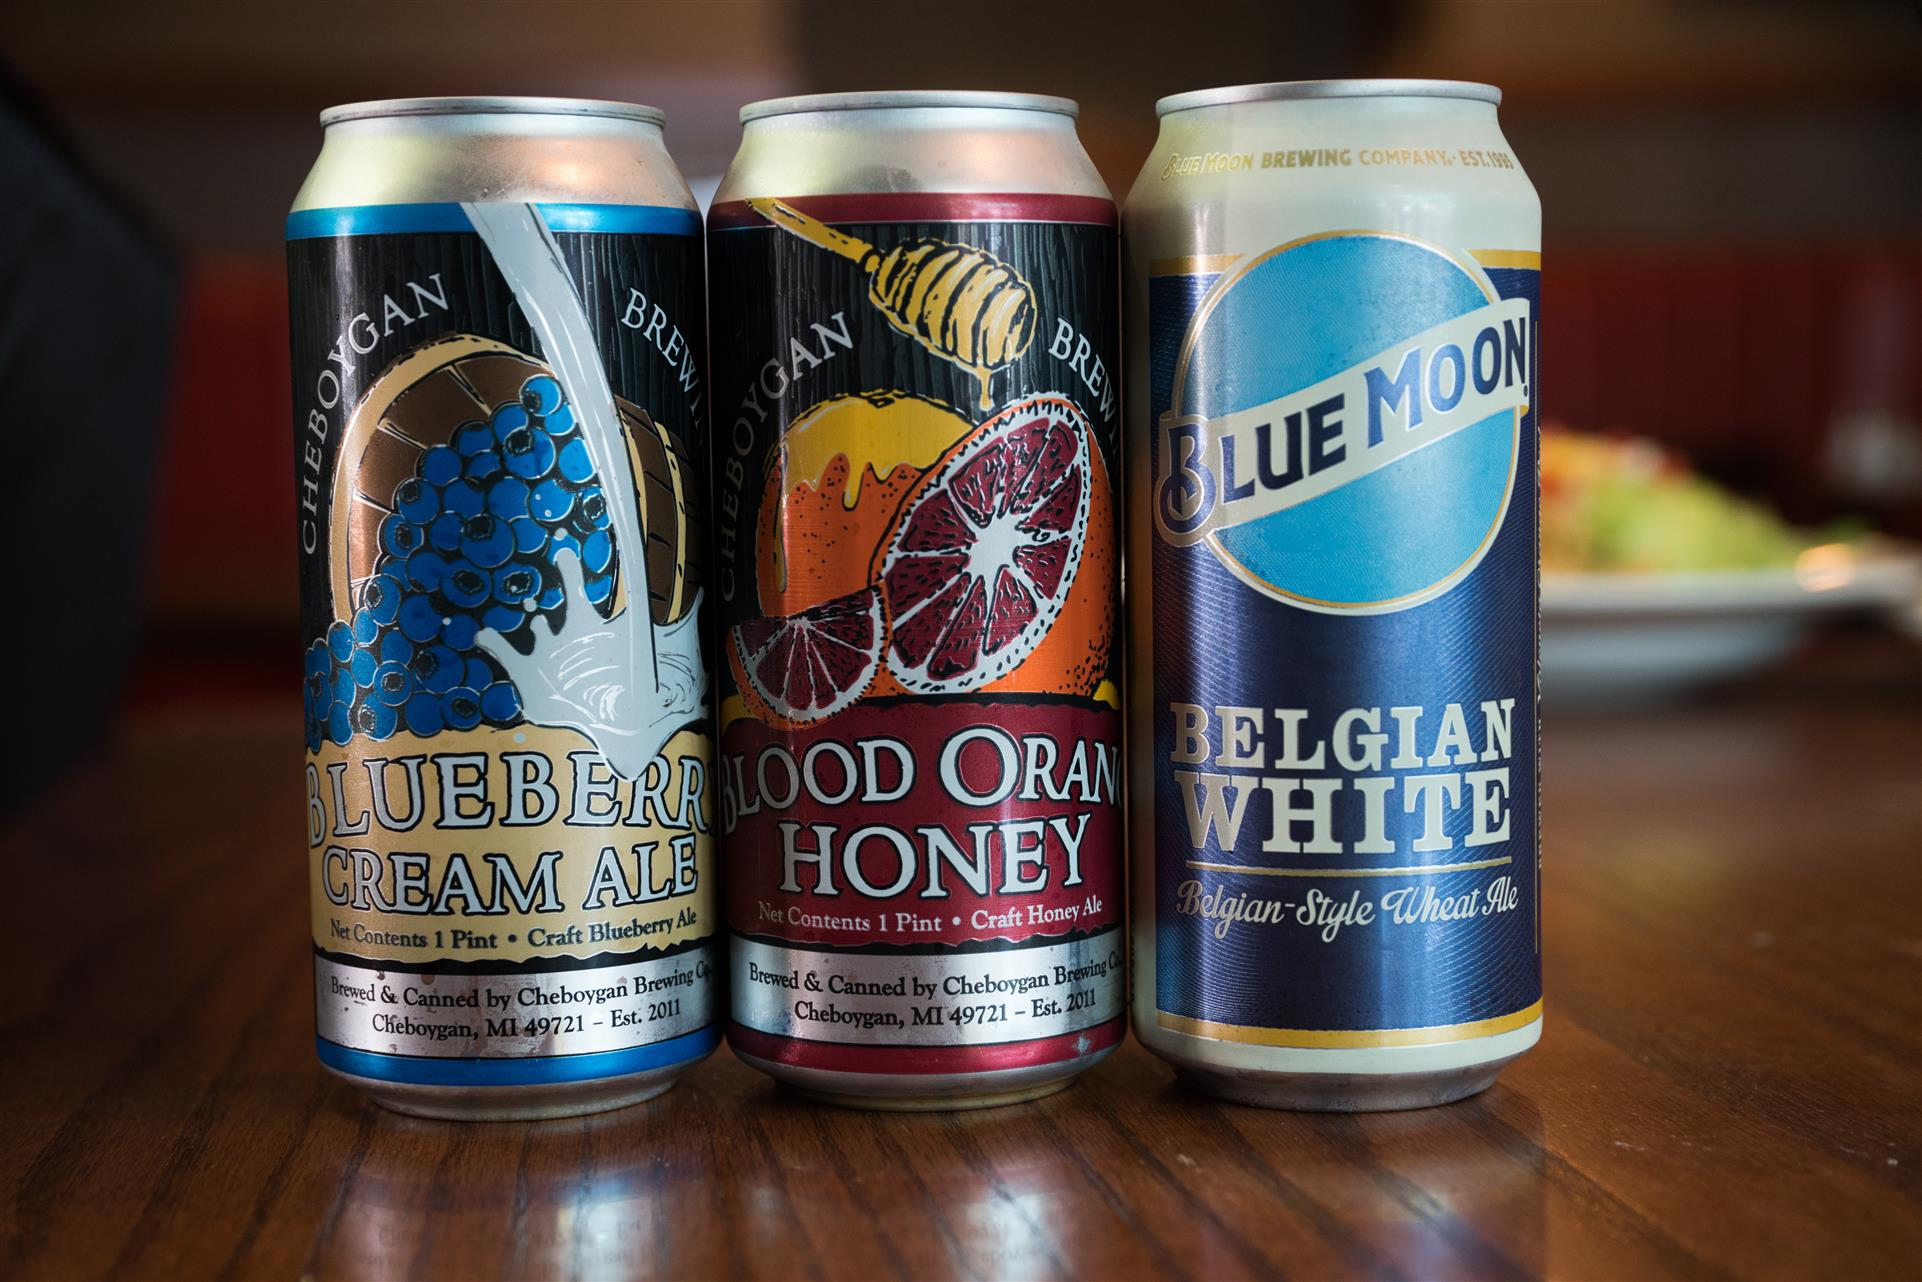 three beer cans: blueberry cream ale, blood orange honey ale, and blue moon belgian white